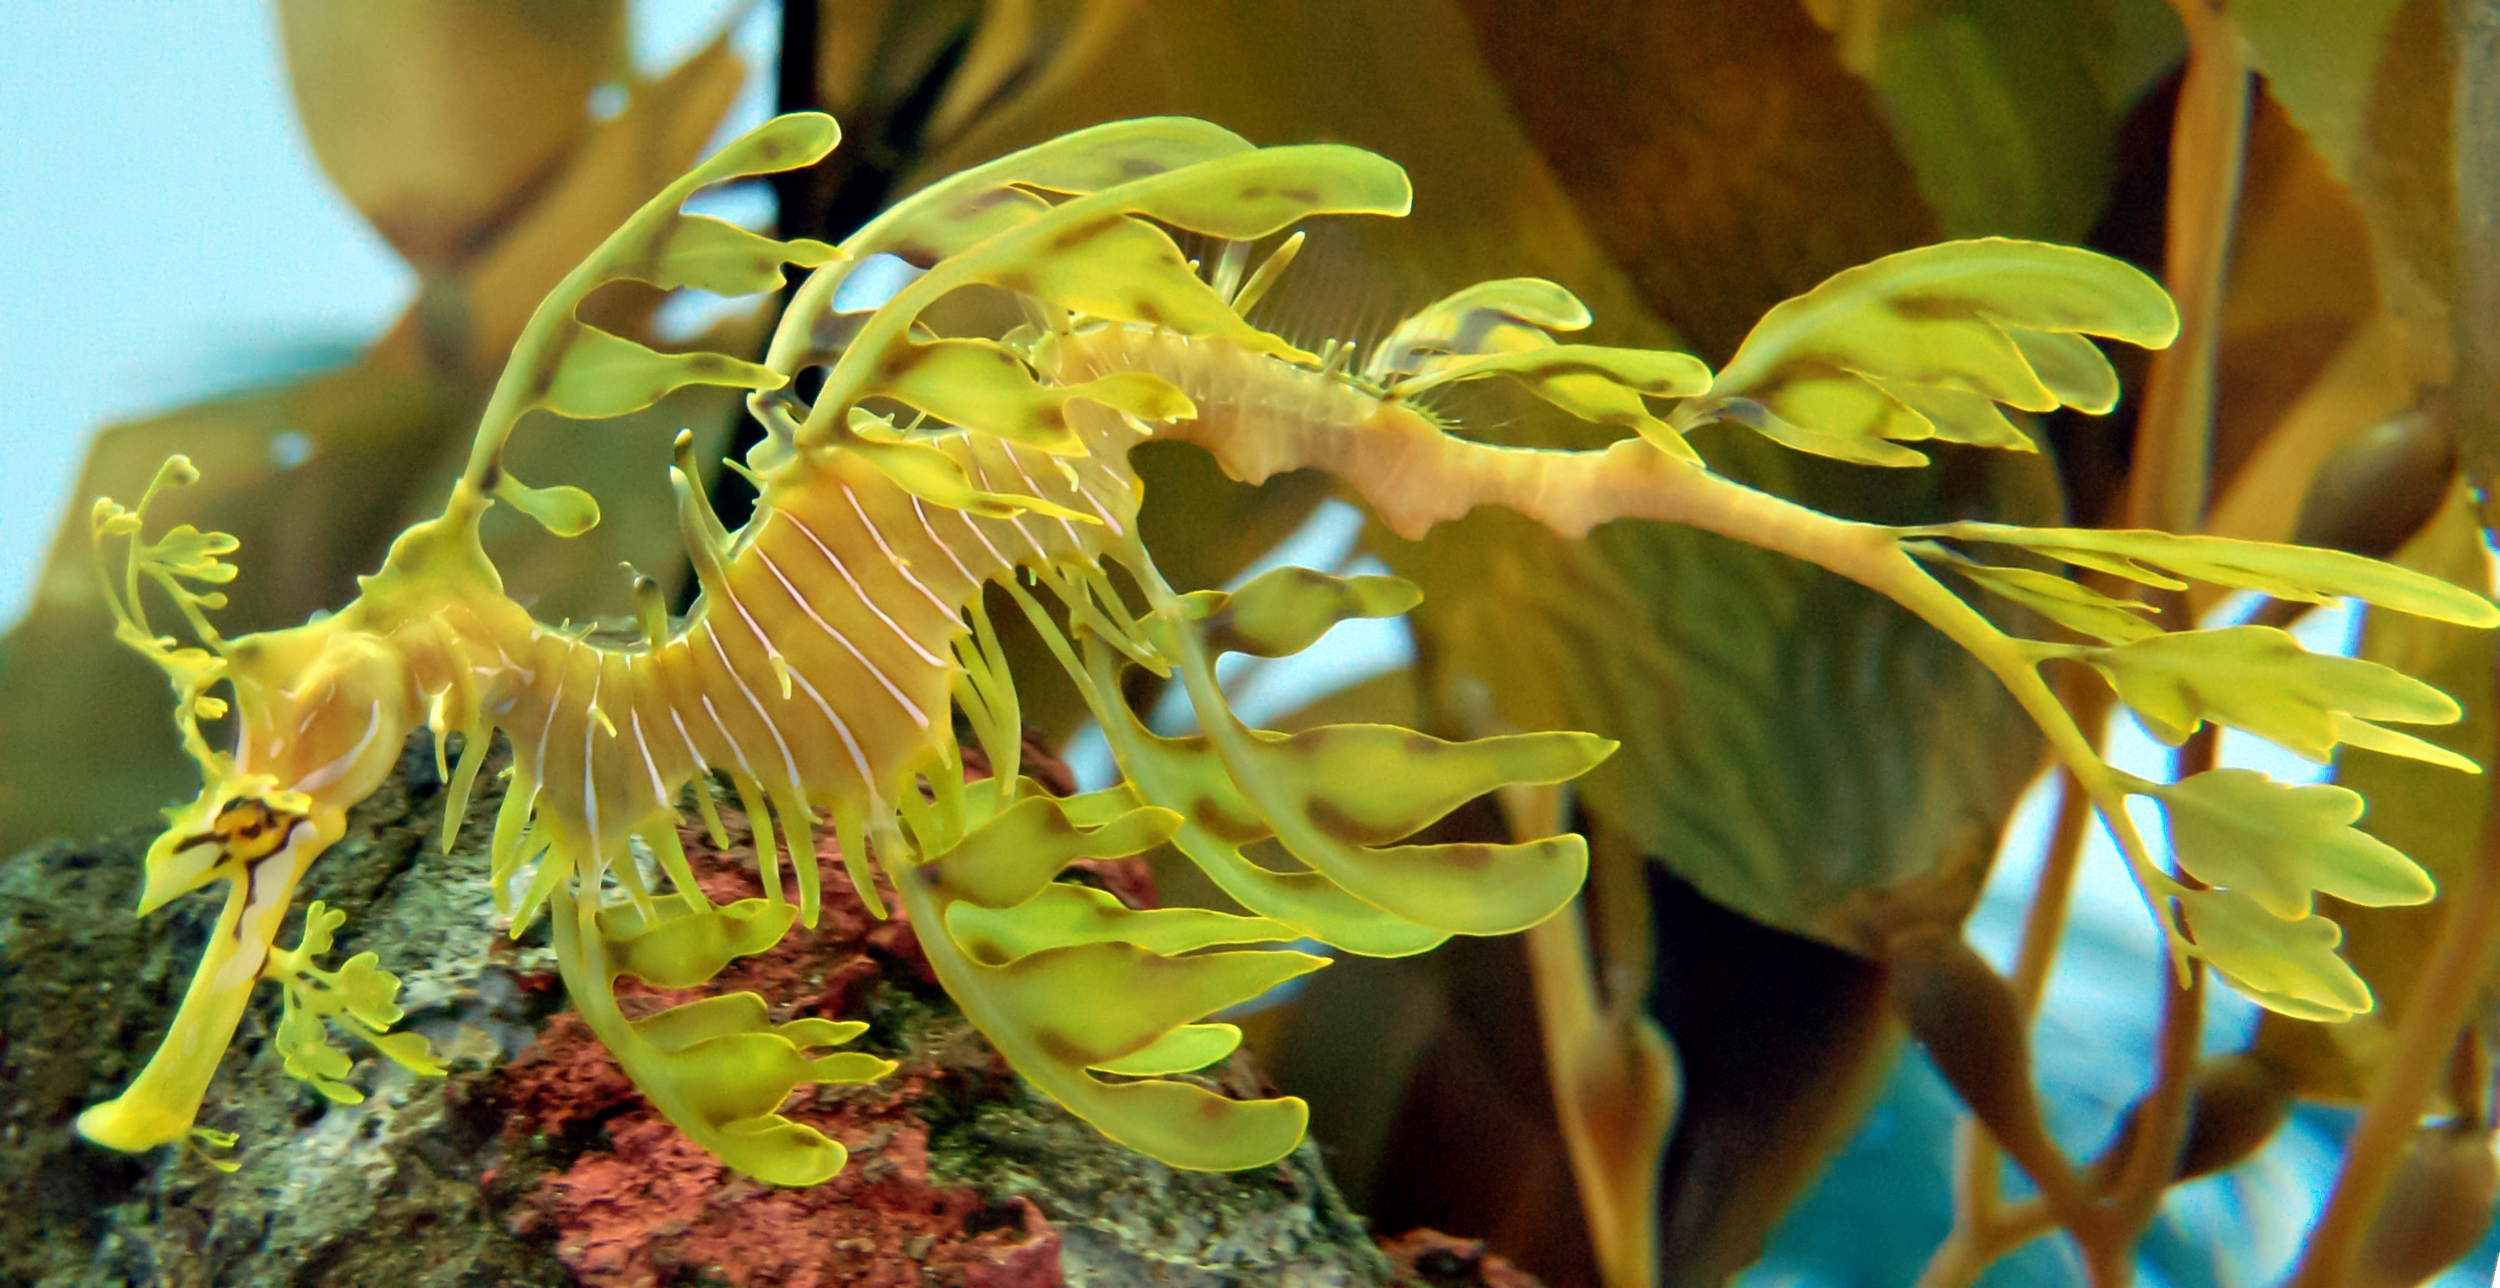 Leafy_Seadragon_Phycodurus_eques_2500px_PLW_edit